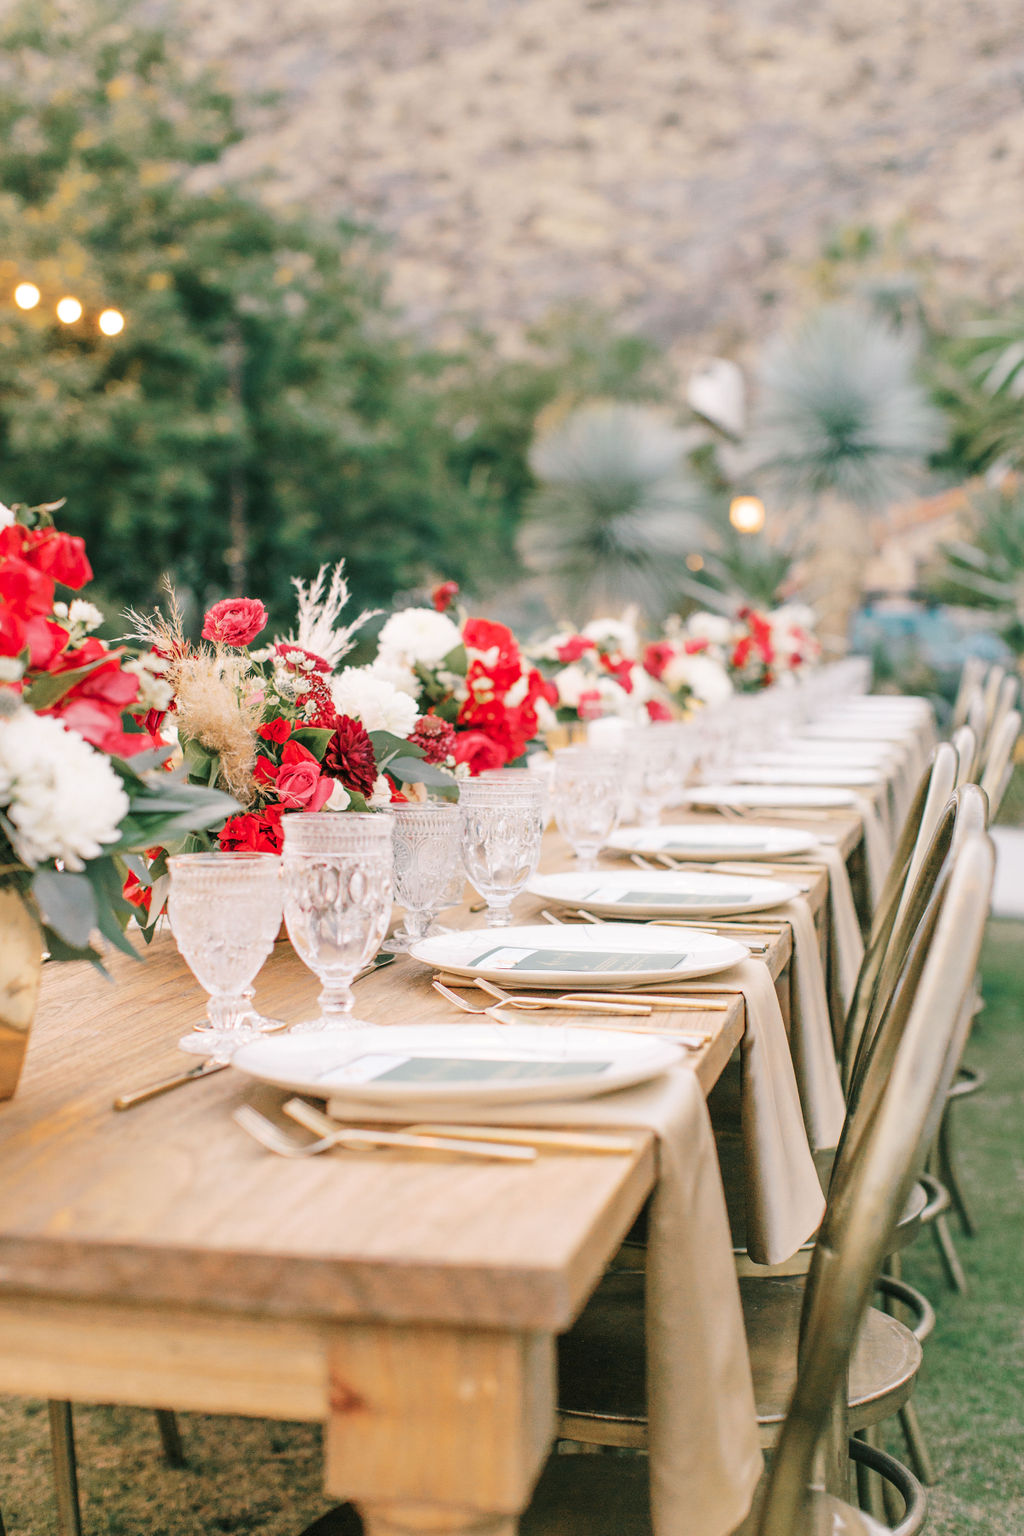 Rustic-Chic Reception Tables